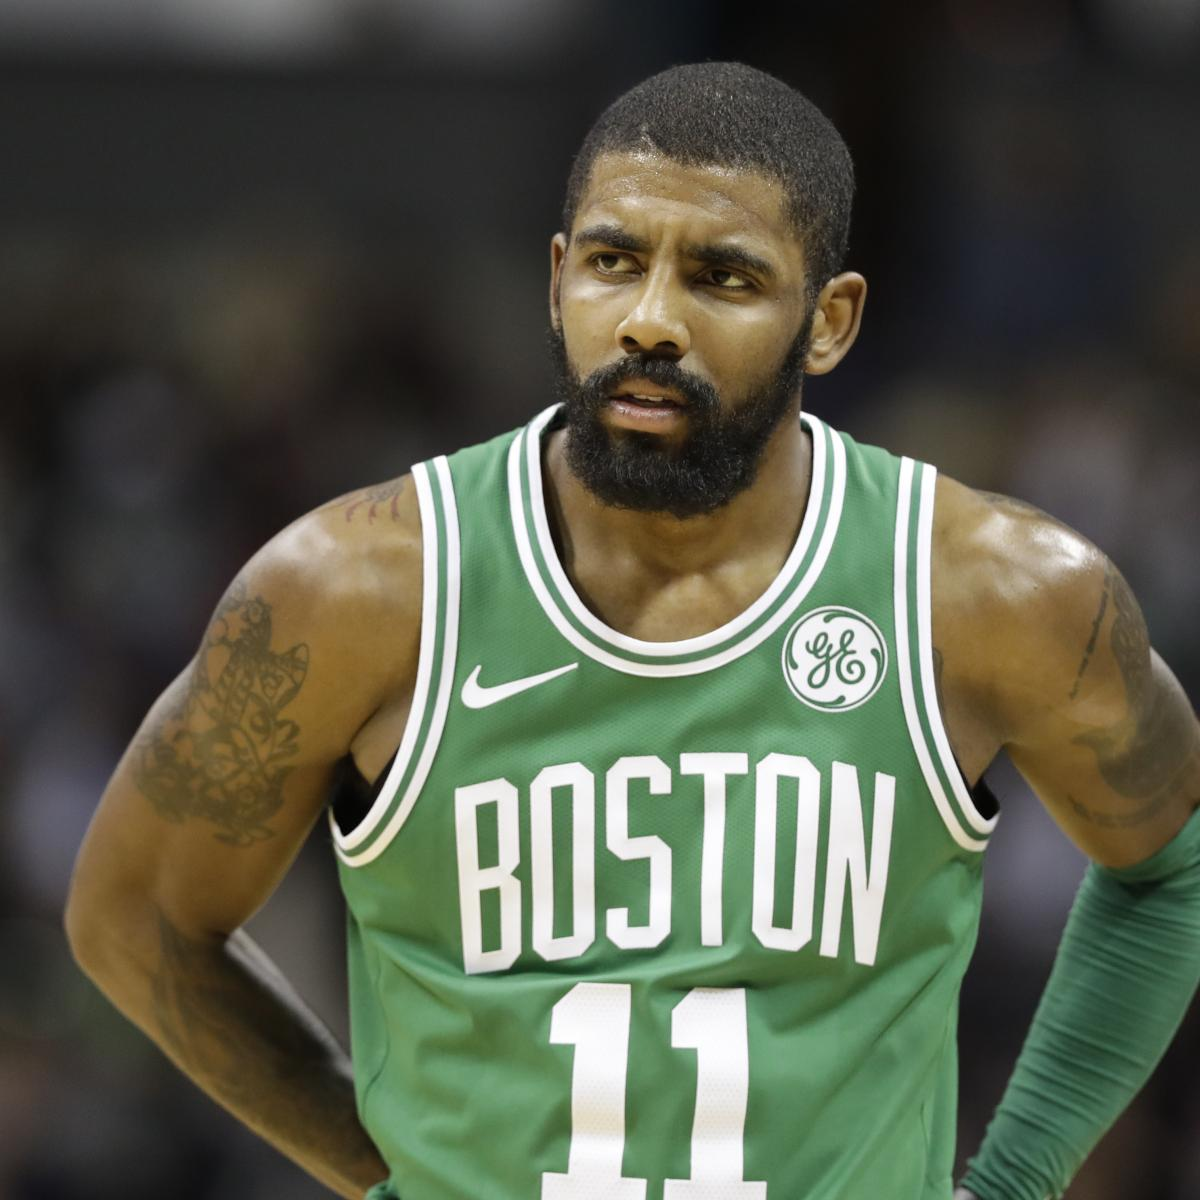 Nba Picks Nuggets And Lakers Game 7 Odds And Betting: Houston Rockets Vs. Boston Celtics Odds, Analysis, NBA